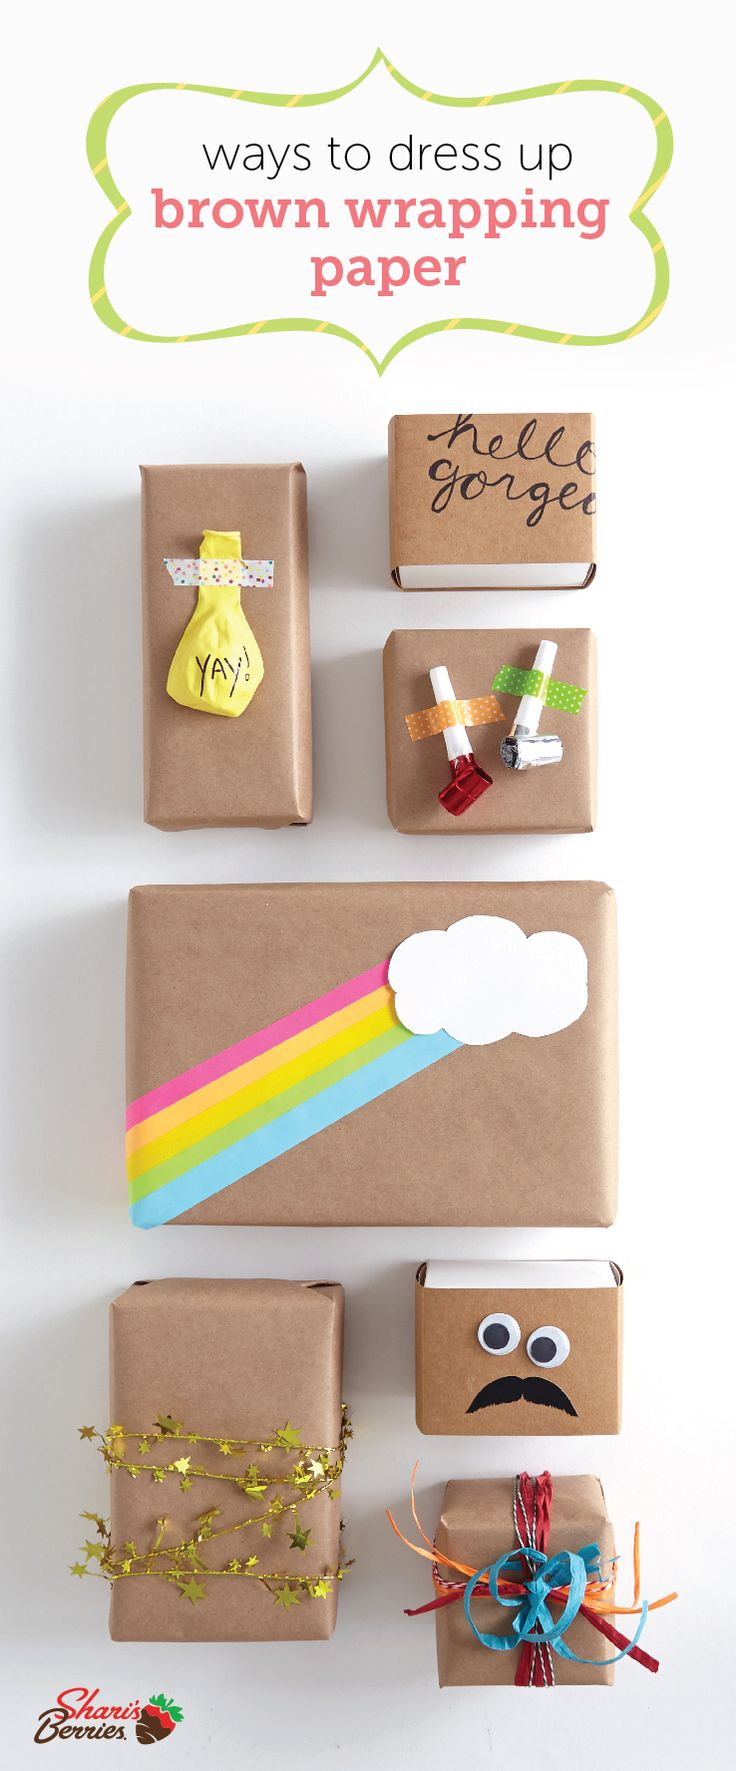 Plain brown wrapping paper